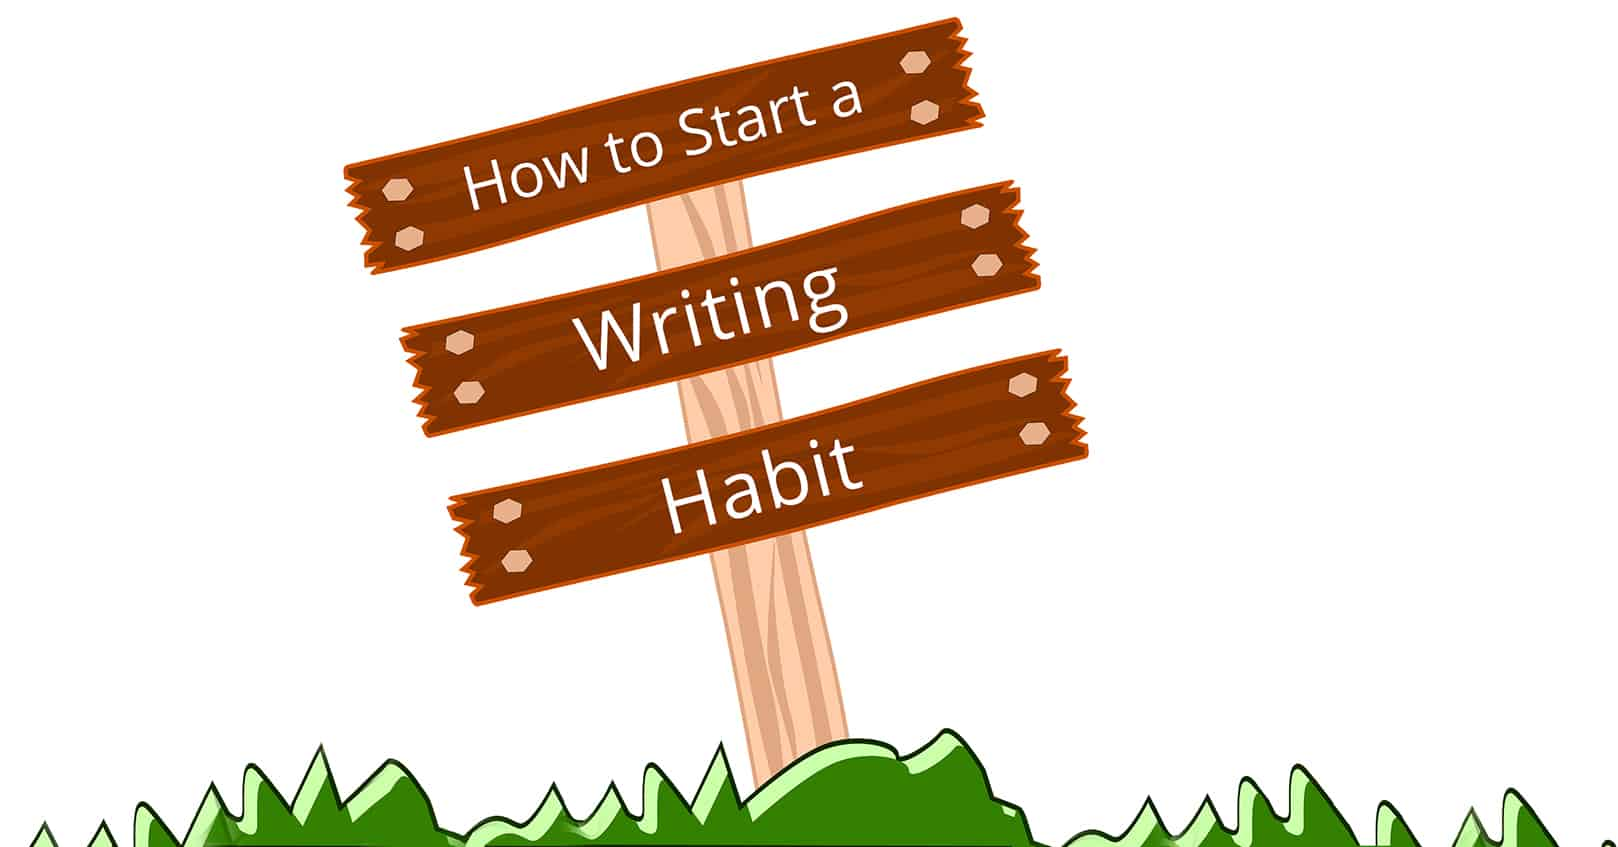 start a writing habit